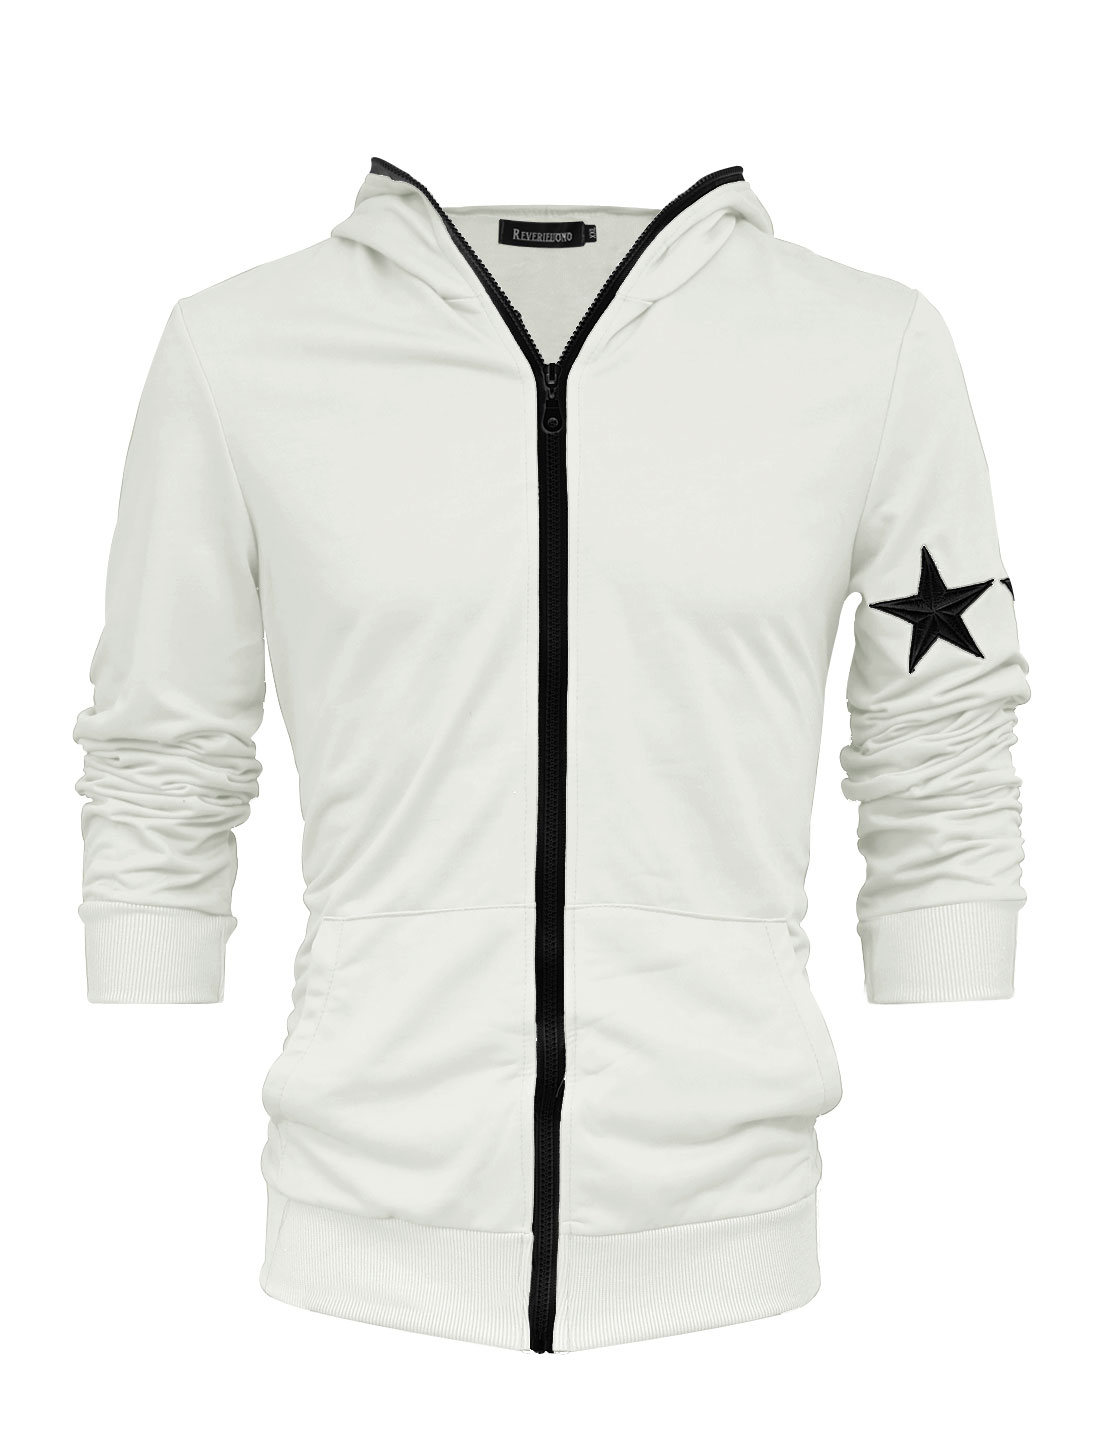 Men Trendy Zip Up Stars Applique Long Sleeve Thin Hooded Jacket Light Gray M